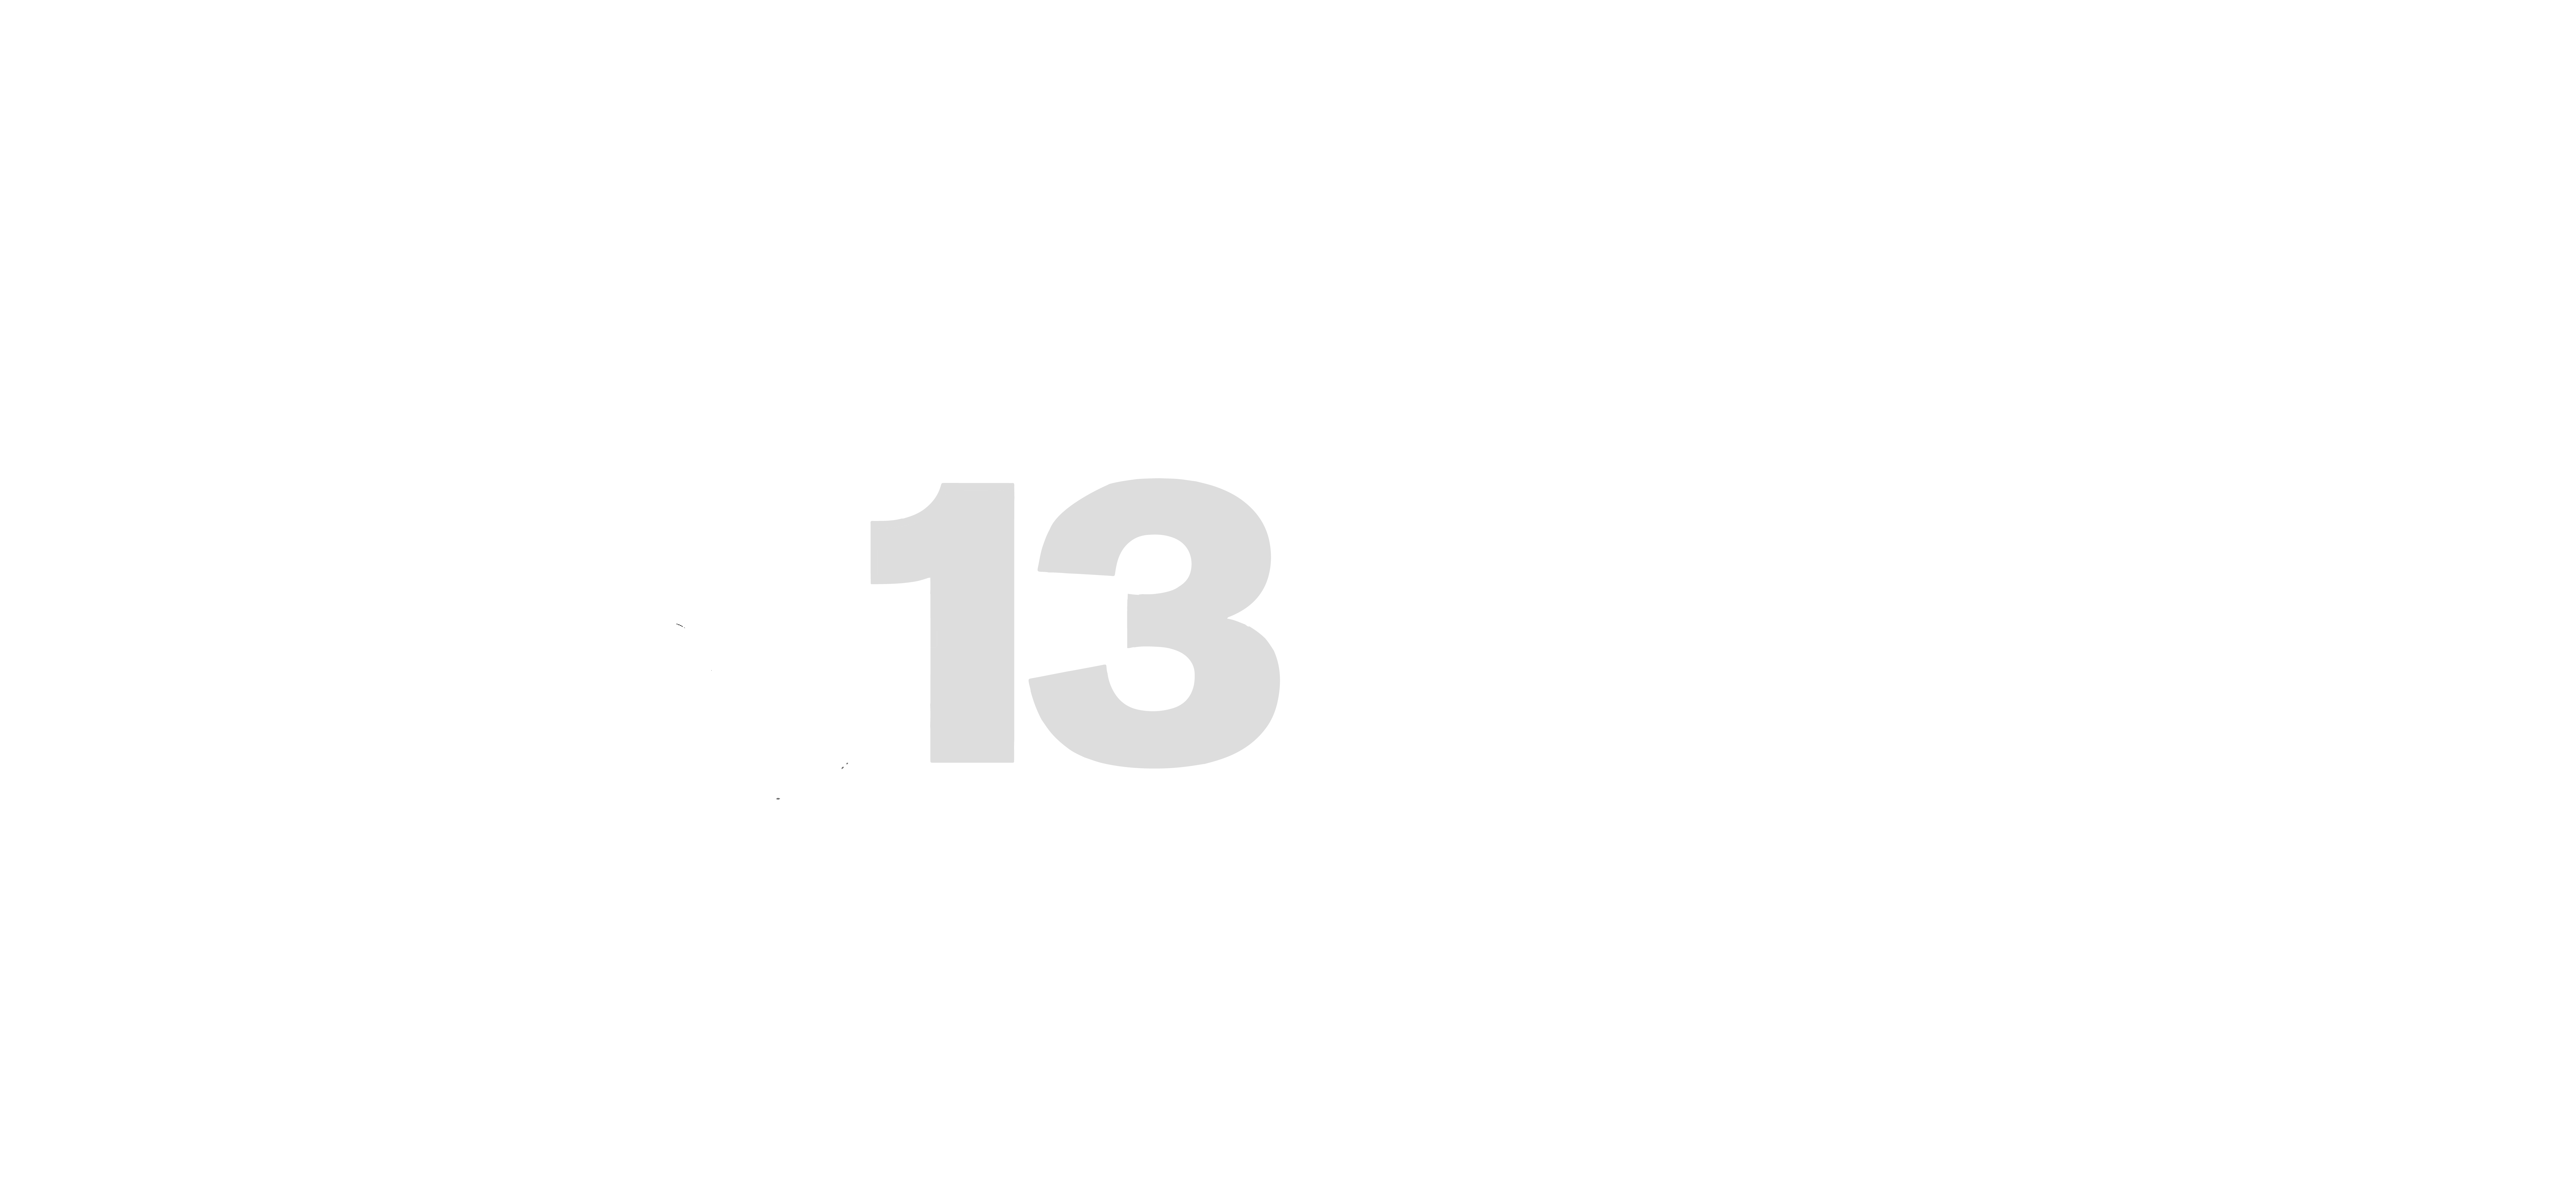 CHANNEL 13 NEWS FEATURE